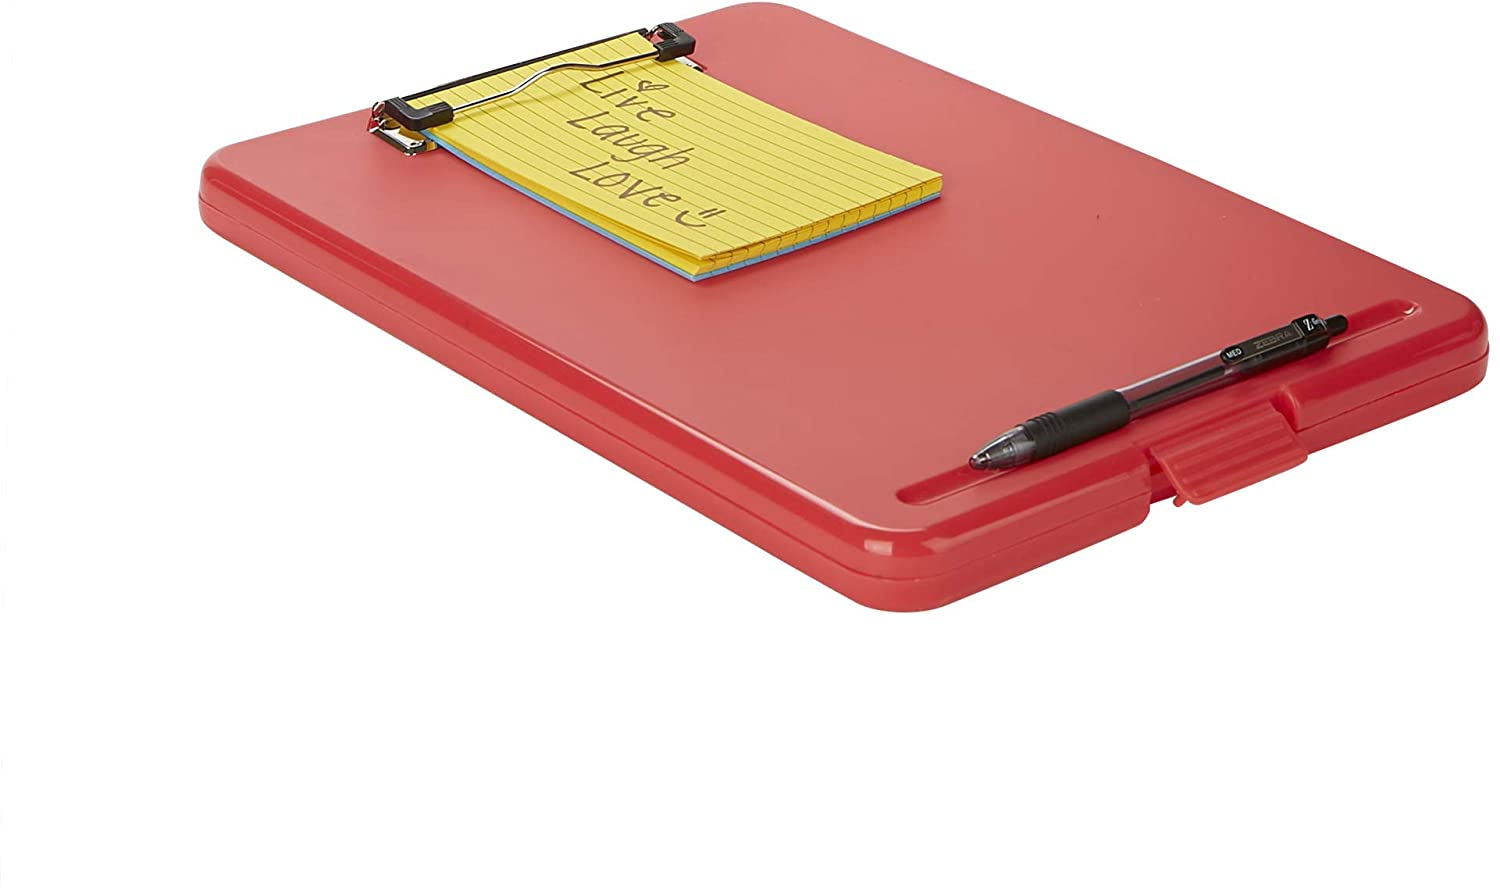 Multi-Color School Bottom Opening Storage Low Profile Clip Mind Reader COLCLIP6-ASST Clipboard Pack of 6 6 Pack Plastic Letter Office